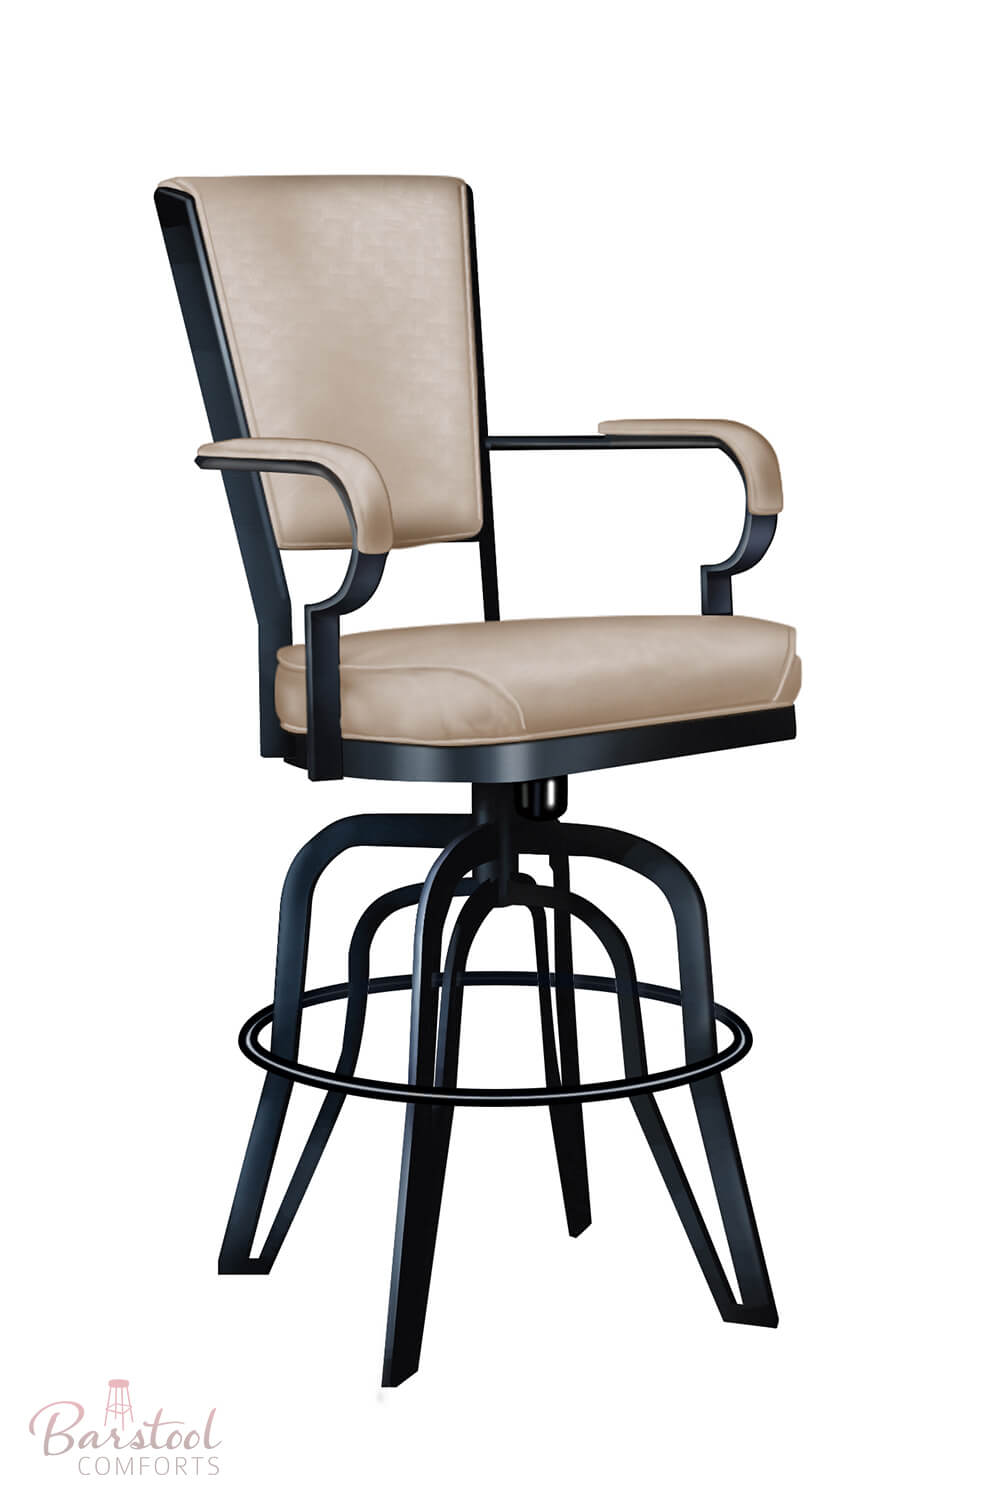 Astonishing Lisa Furniture 2545 Rocking Tilt Swivel Bar Stool Spiritservingveterans Wood Chair Design Ideas Spiritservingveteransorg